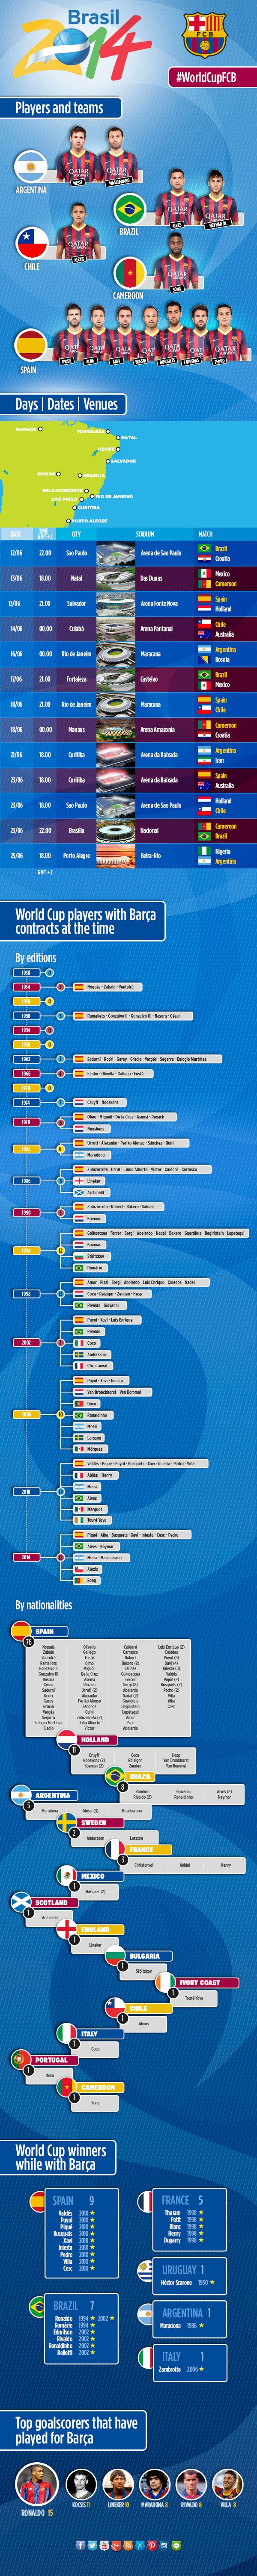 FCBarcelona at the World Cup #Brazil #FCBarcelona #WorldCup2014